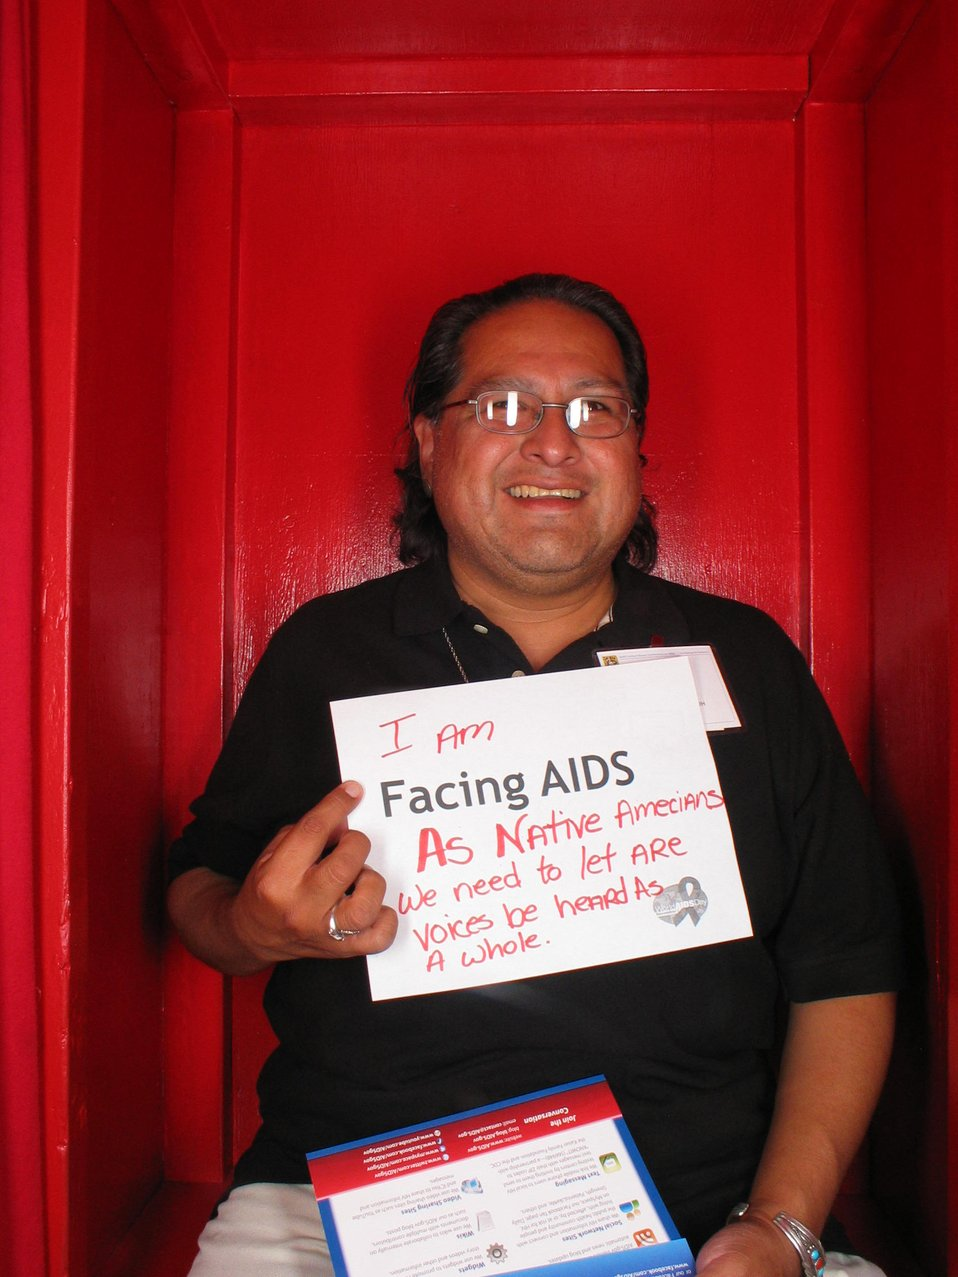 I am Facing AIDS as Native Americans we nee to let are voice be heard as a whole.